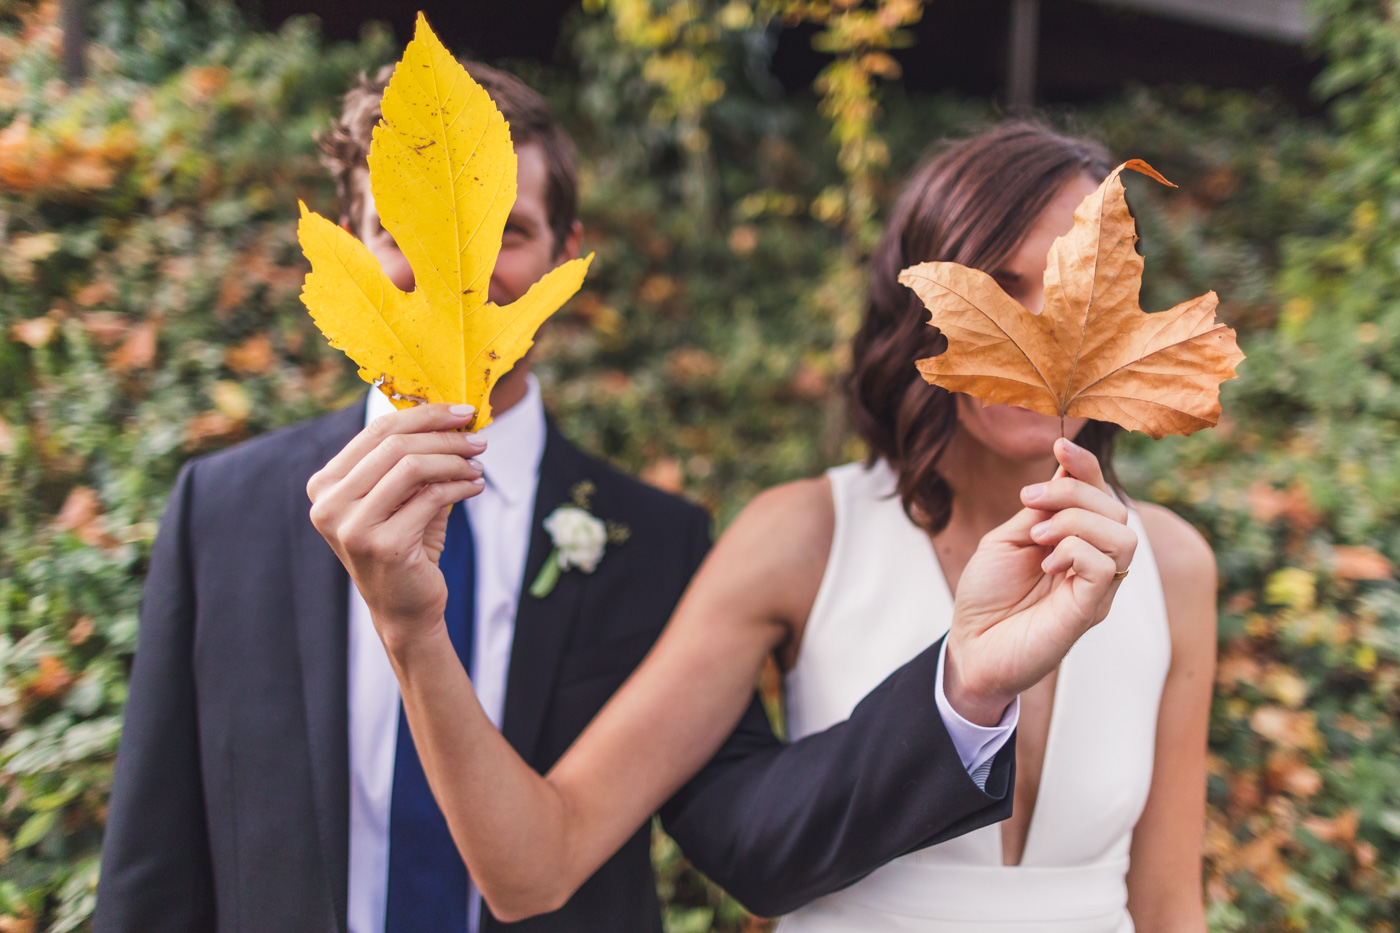 fun-silly-wedding-photo-leaves